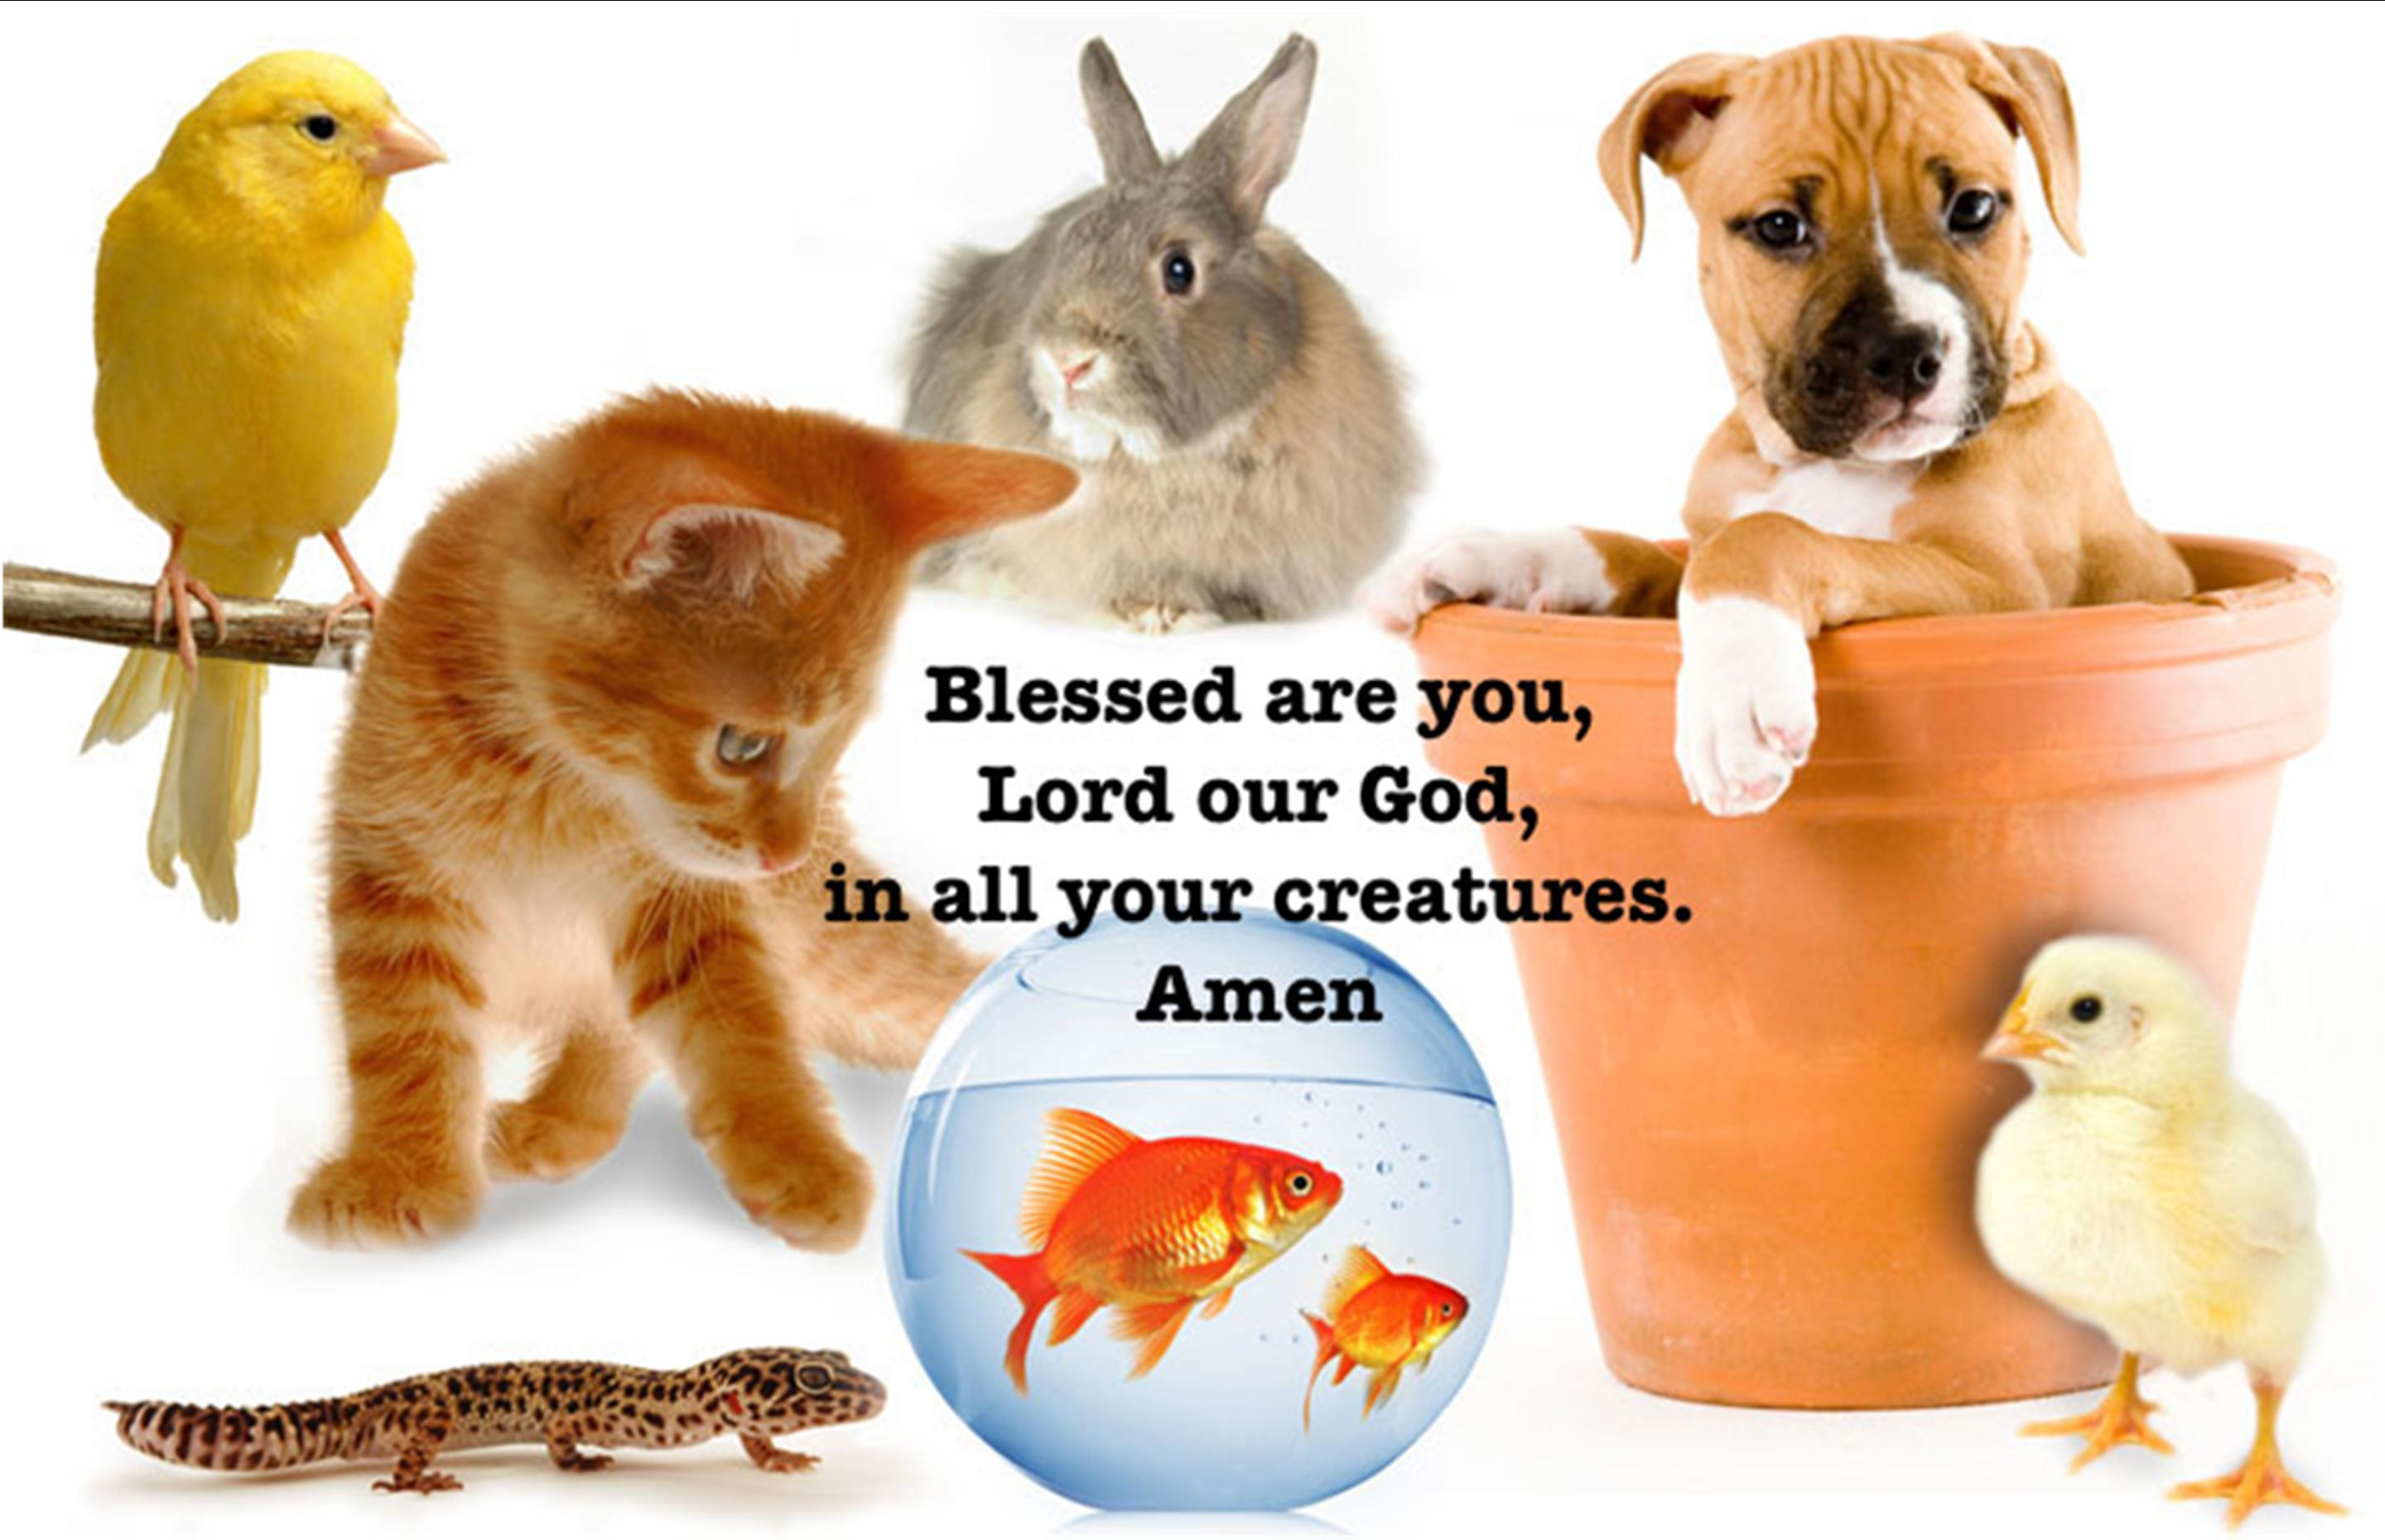 Pet Blessing October 7 at 8:00, 9:15, and 11:00 a.m.